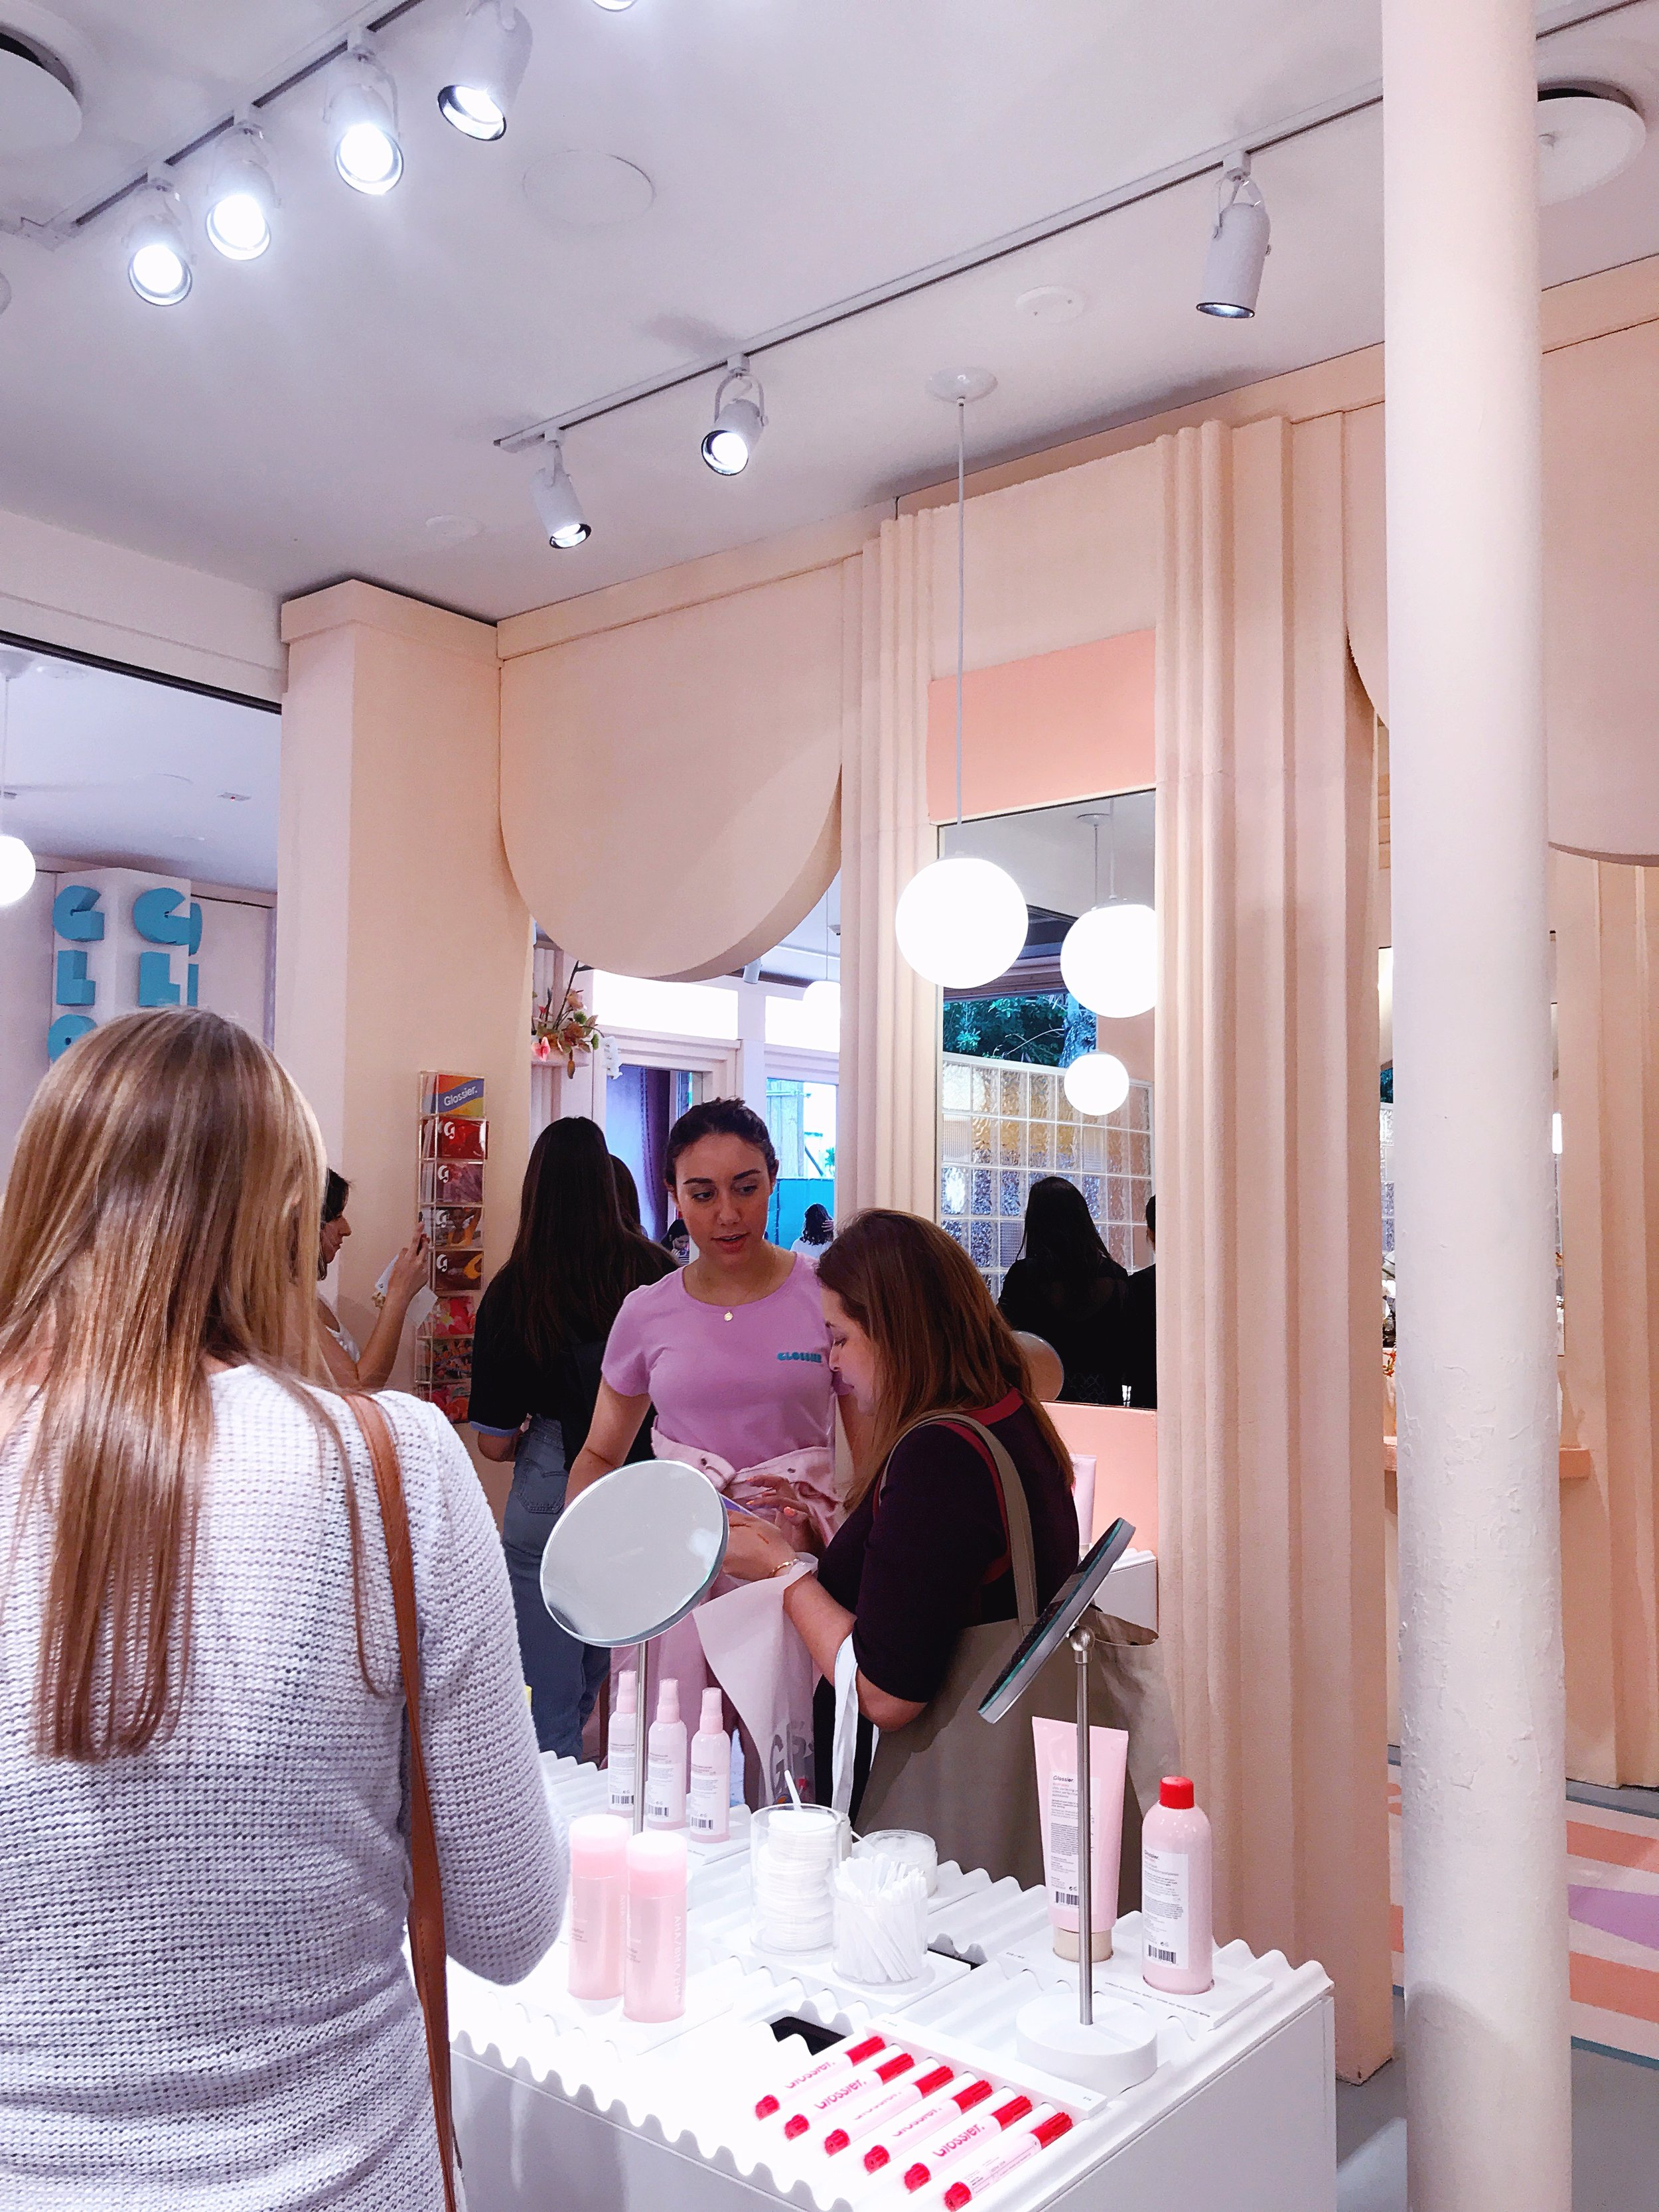 Glossier hit Miami Beach in full millennial pink force. (Photo Credit: Natalia Yepes)